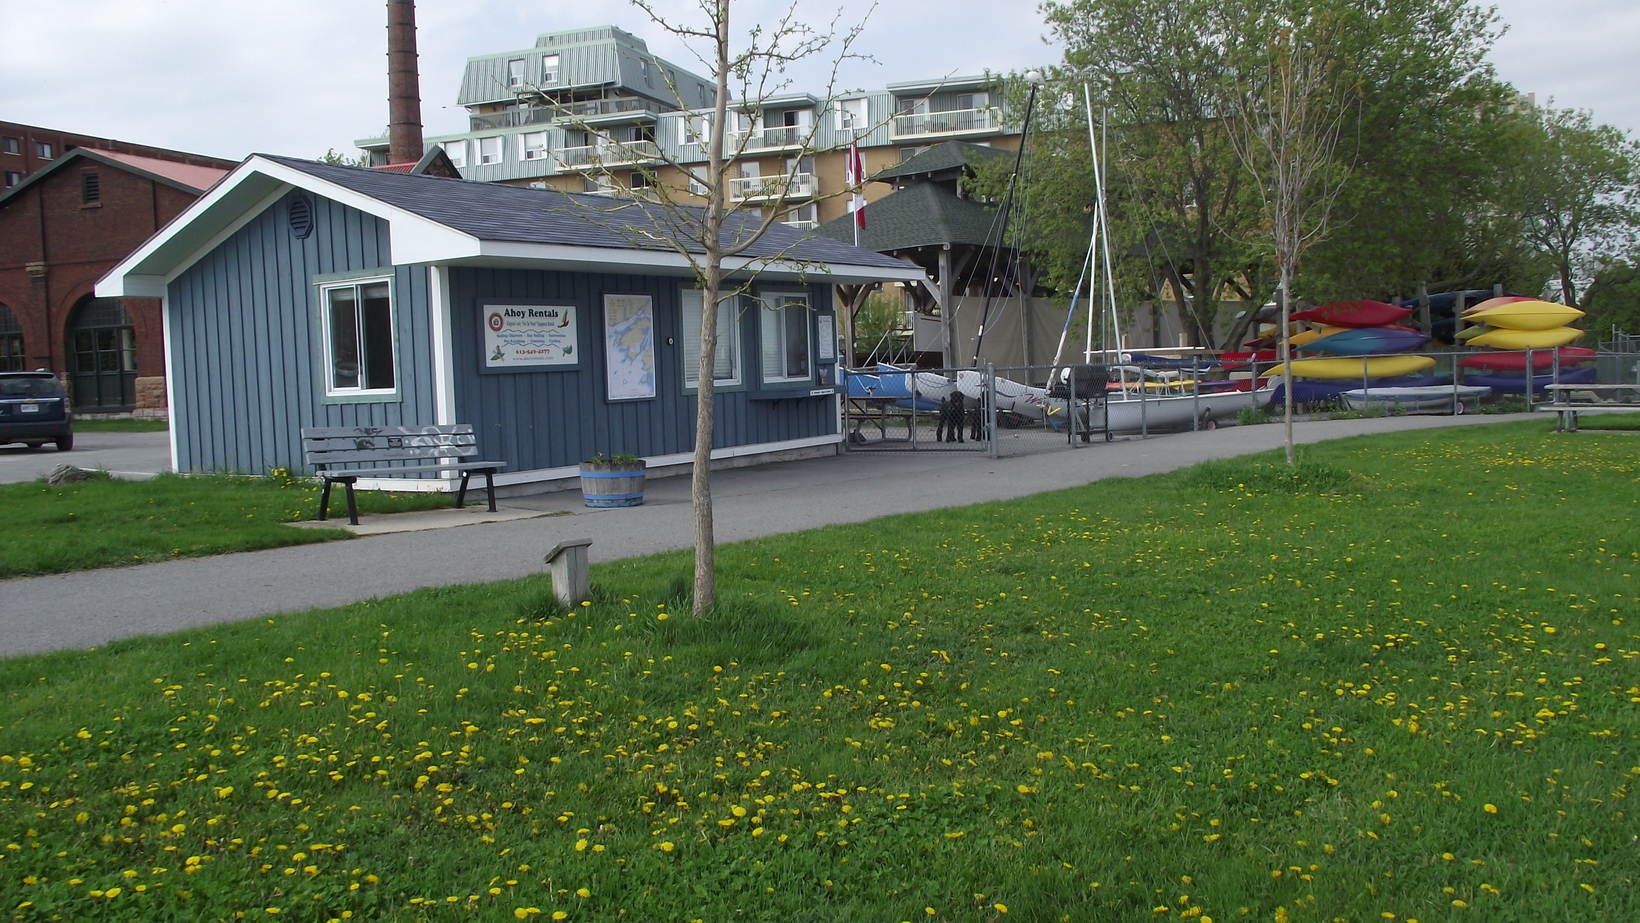 Ahoy Rentals - Waterfront location for all your paddling and sailing fun.